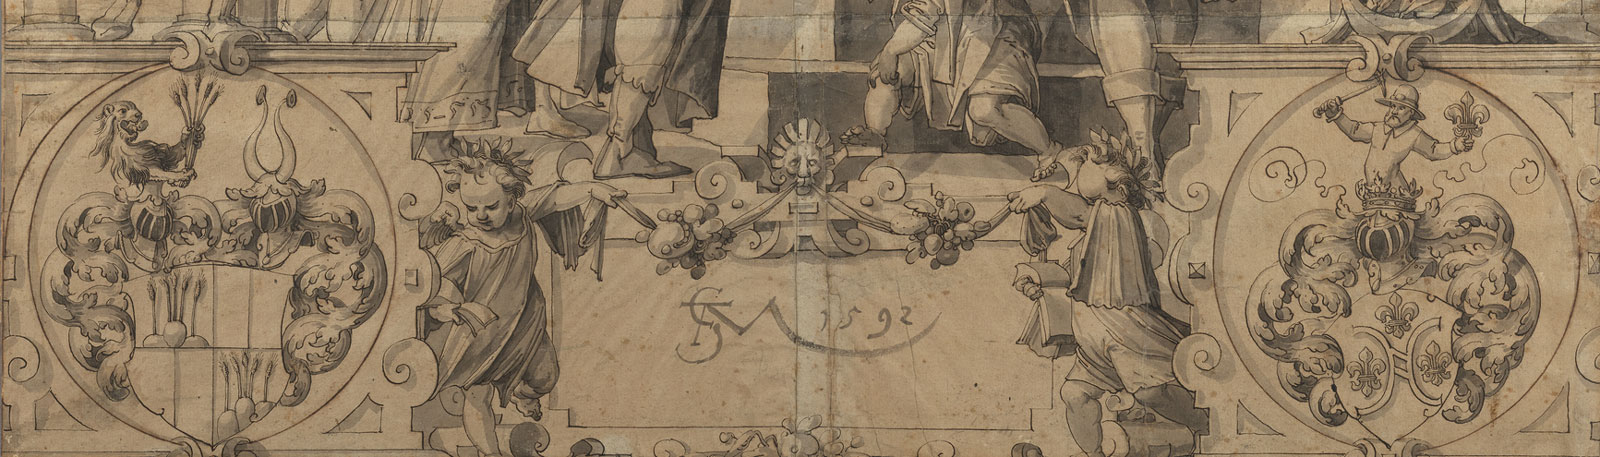 Detail of a sketch showing crests a signature and cherubs.